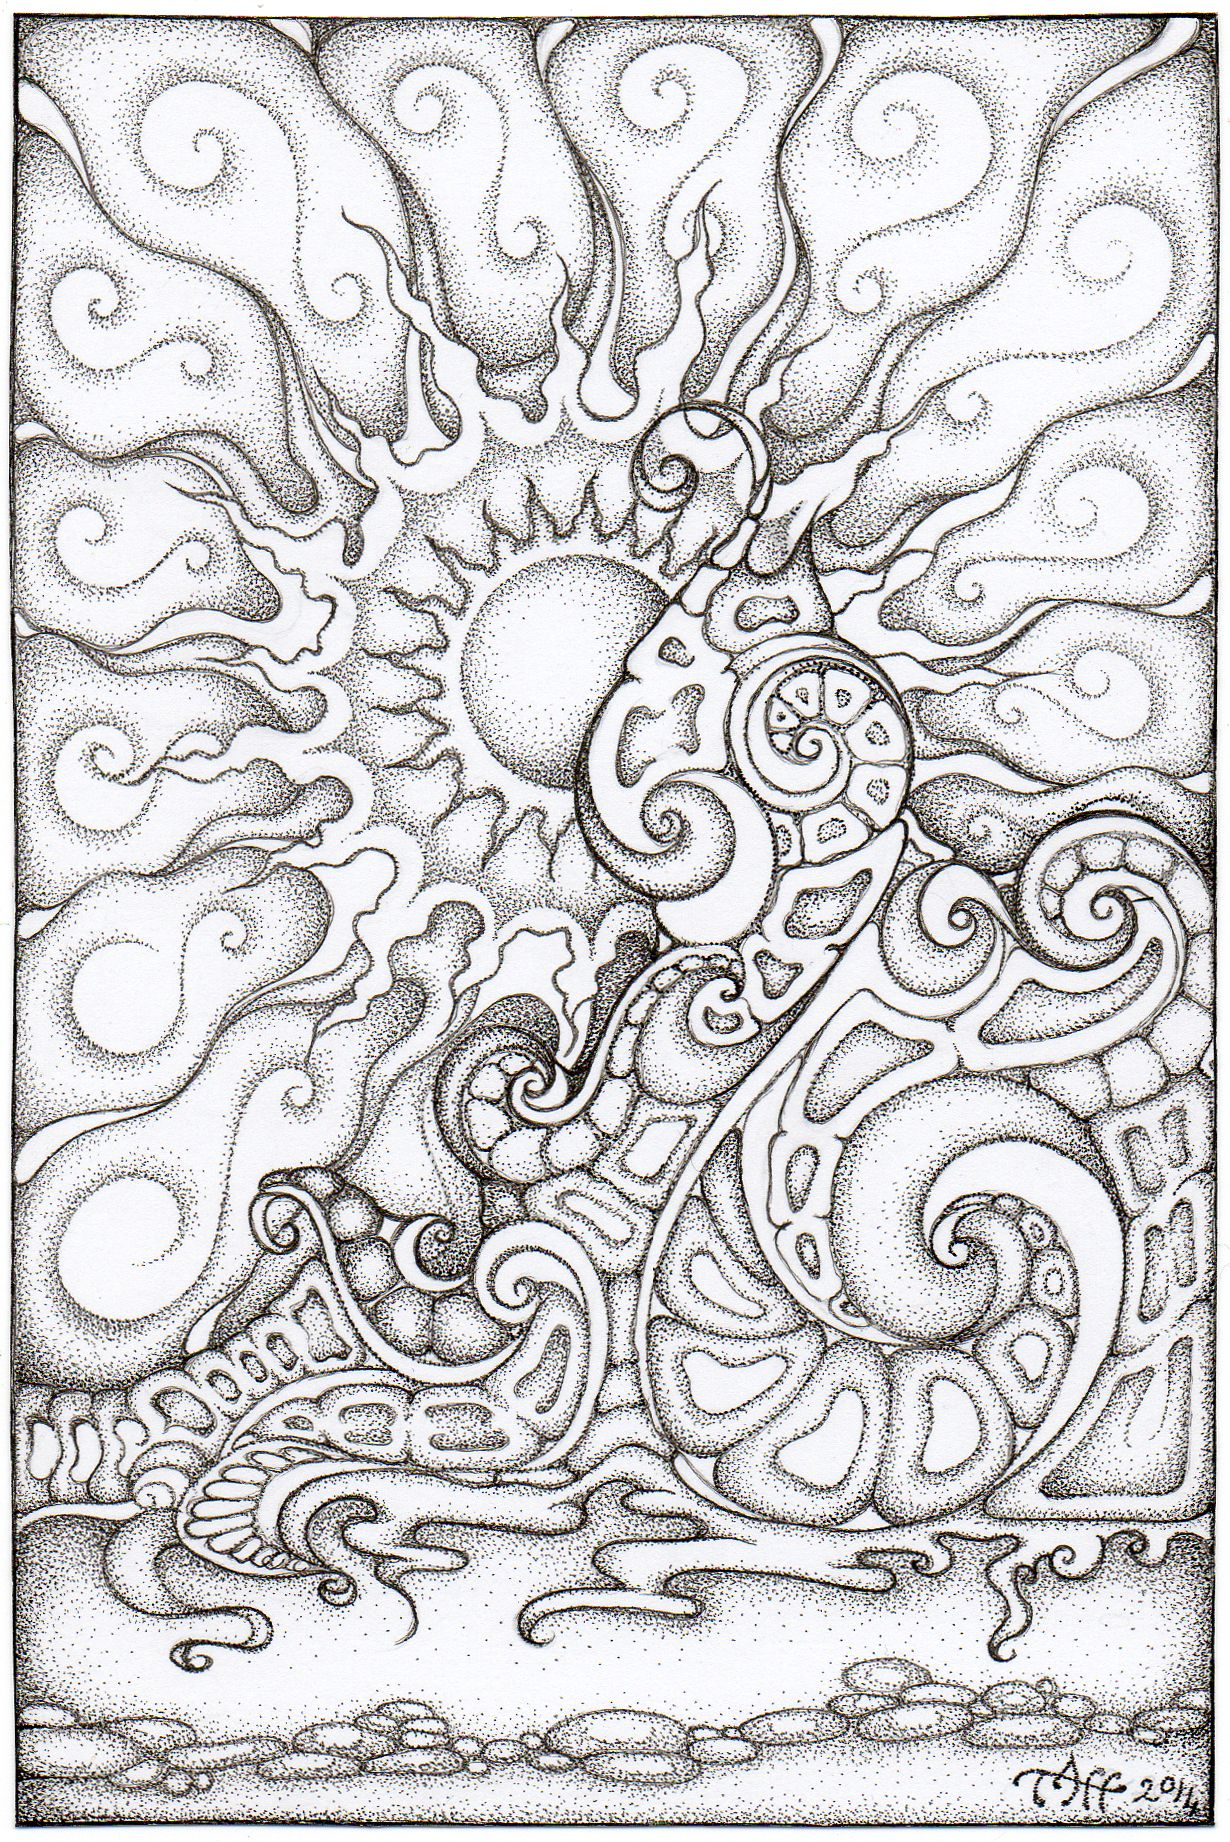 Onewave 6x4 By Tapwatertaffy D79pz72 Jpg 1230 1842 Coloring Pages Adult Coloring Pages Adult Coloring